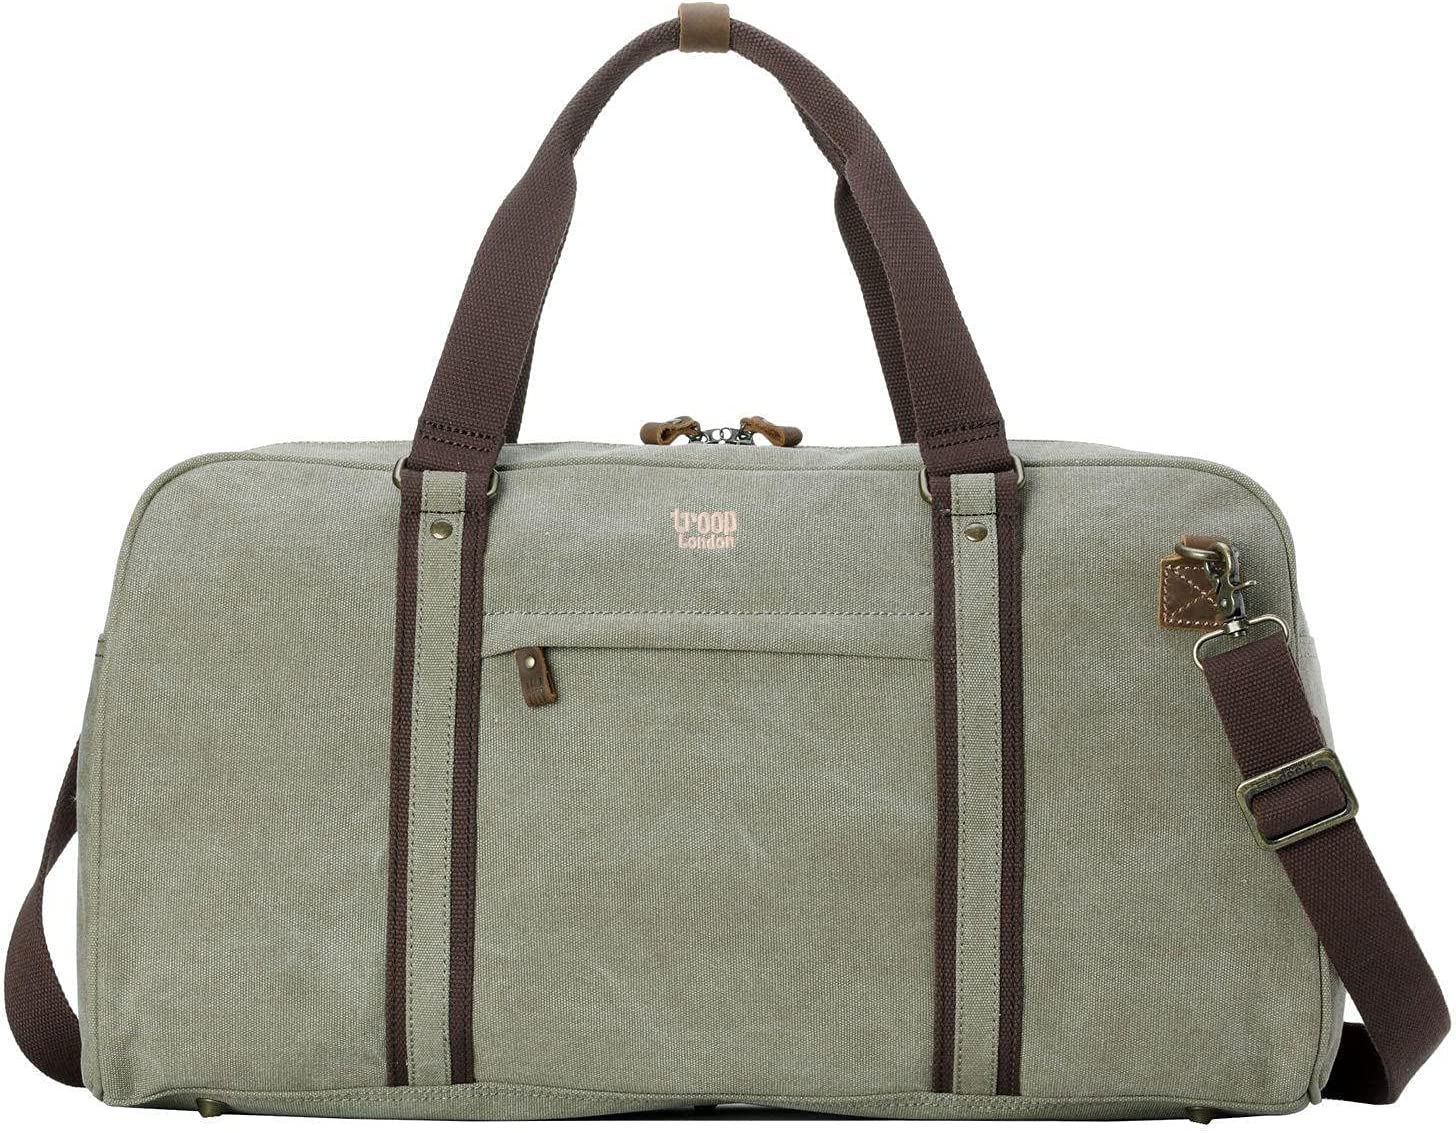 TRP0389 Troop London Deluxe Classic Canvas High quality new Travel Hol Bag Duffel Large